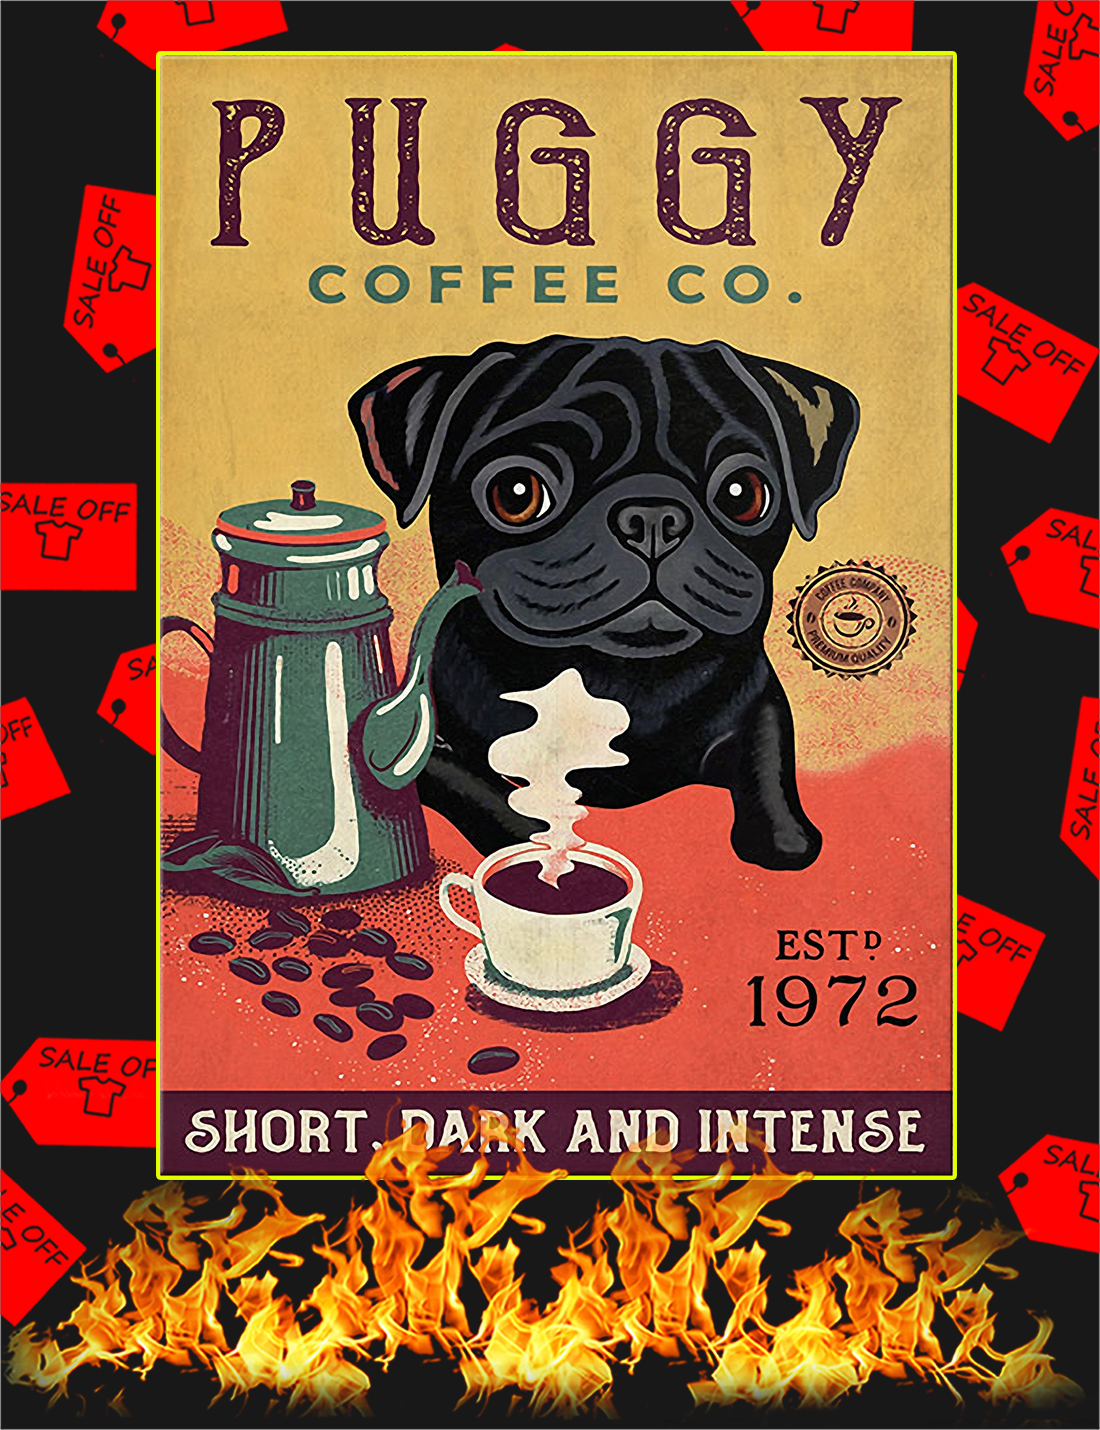 Puggy coffee co short dark and intense poster - A4